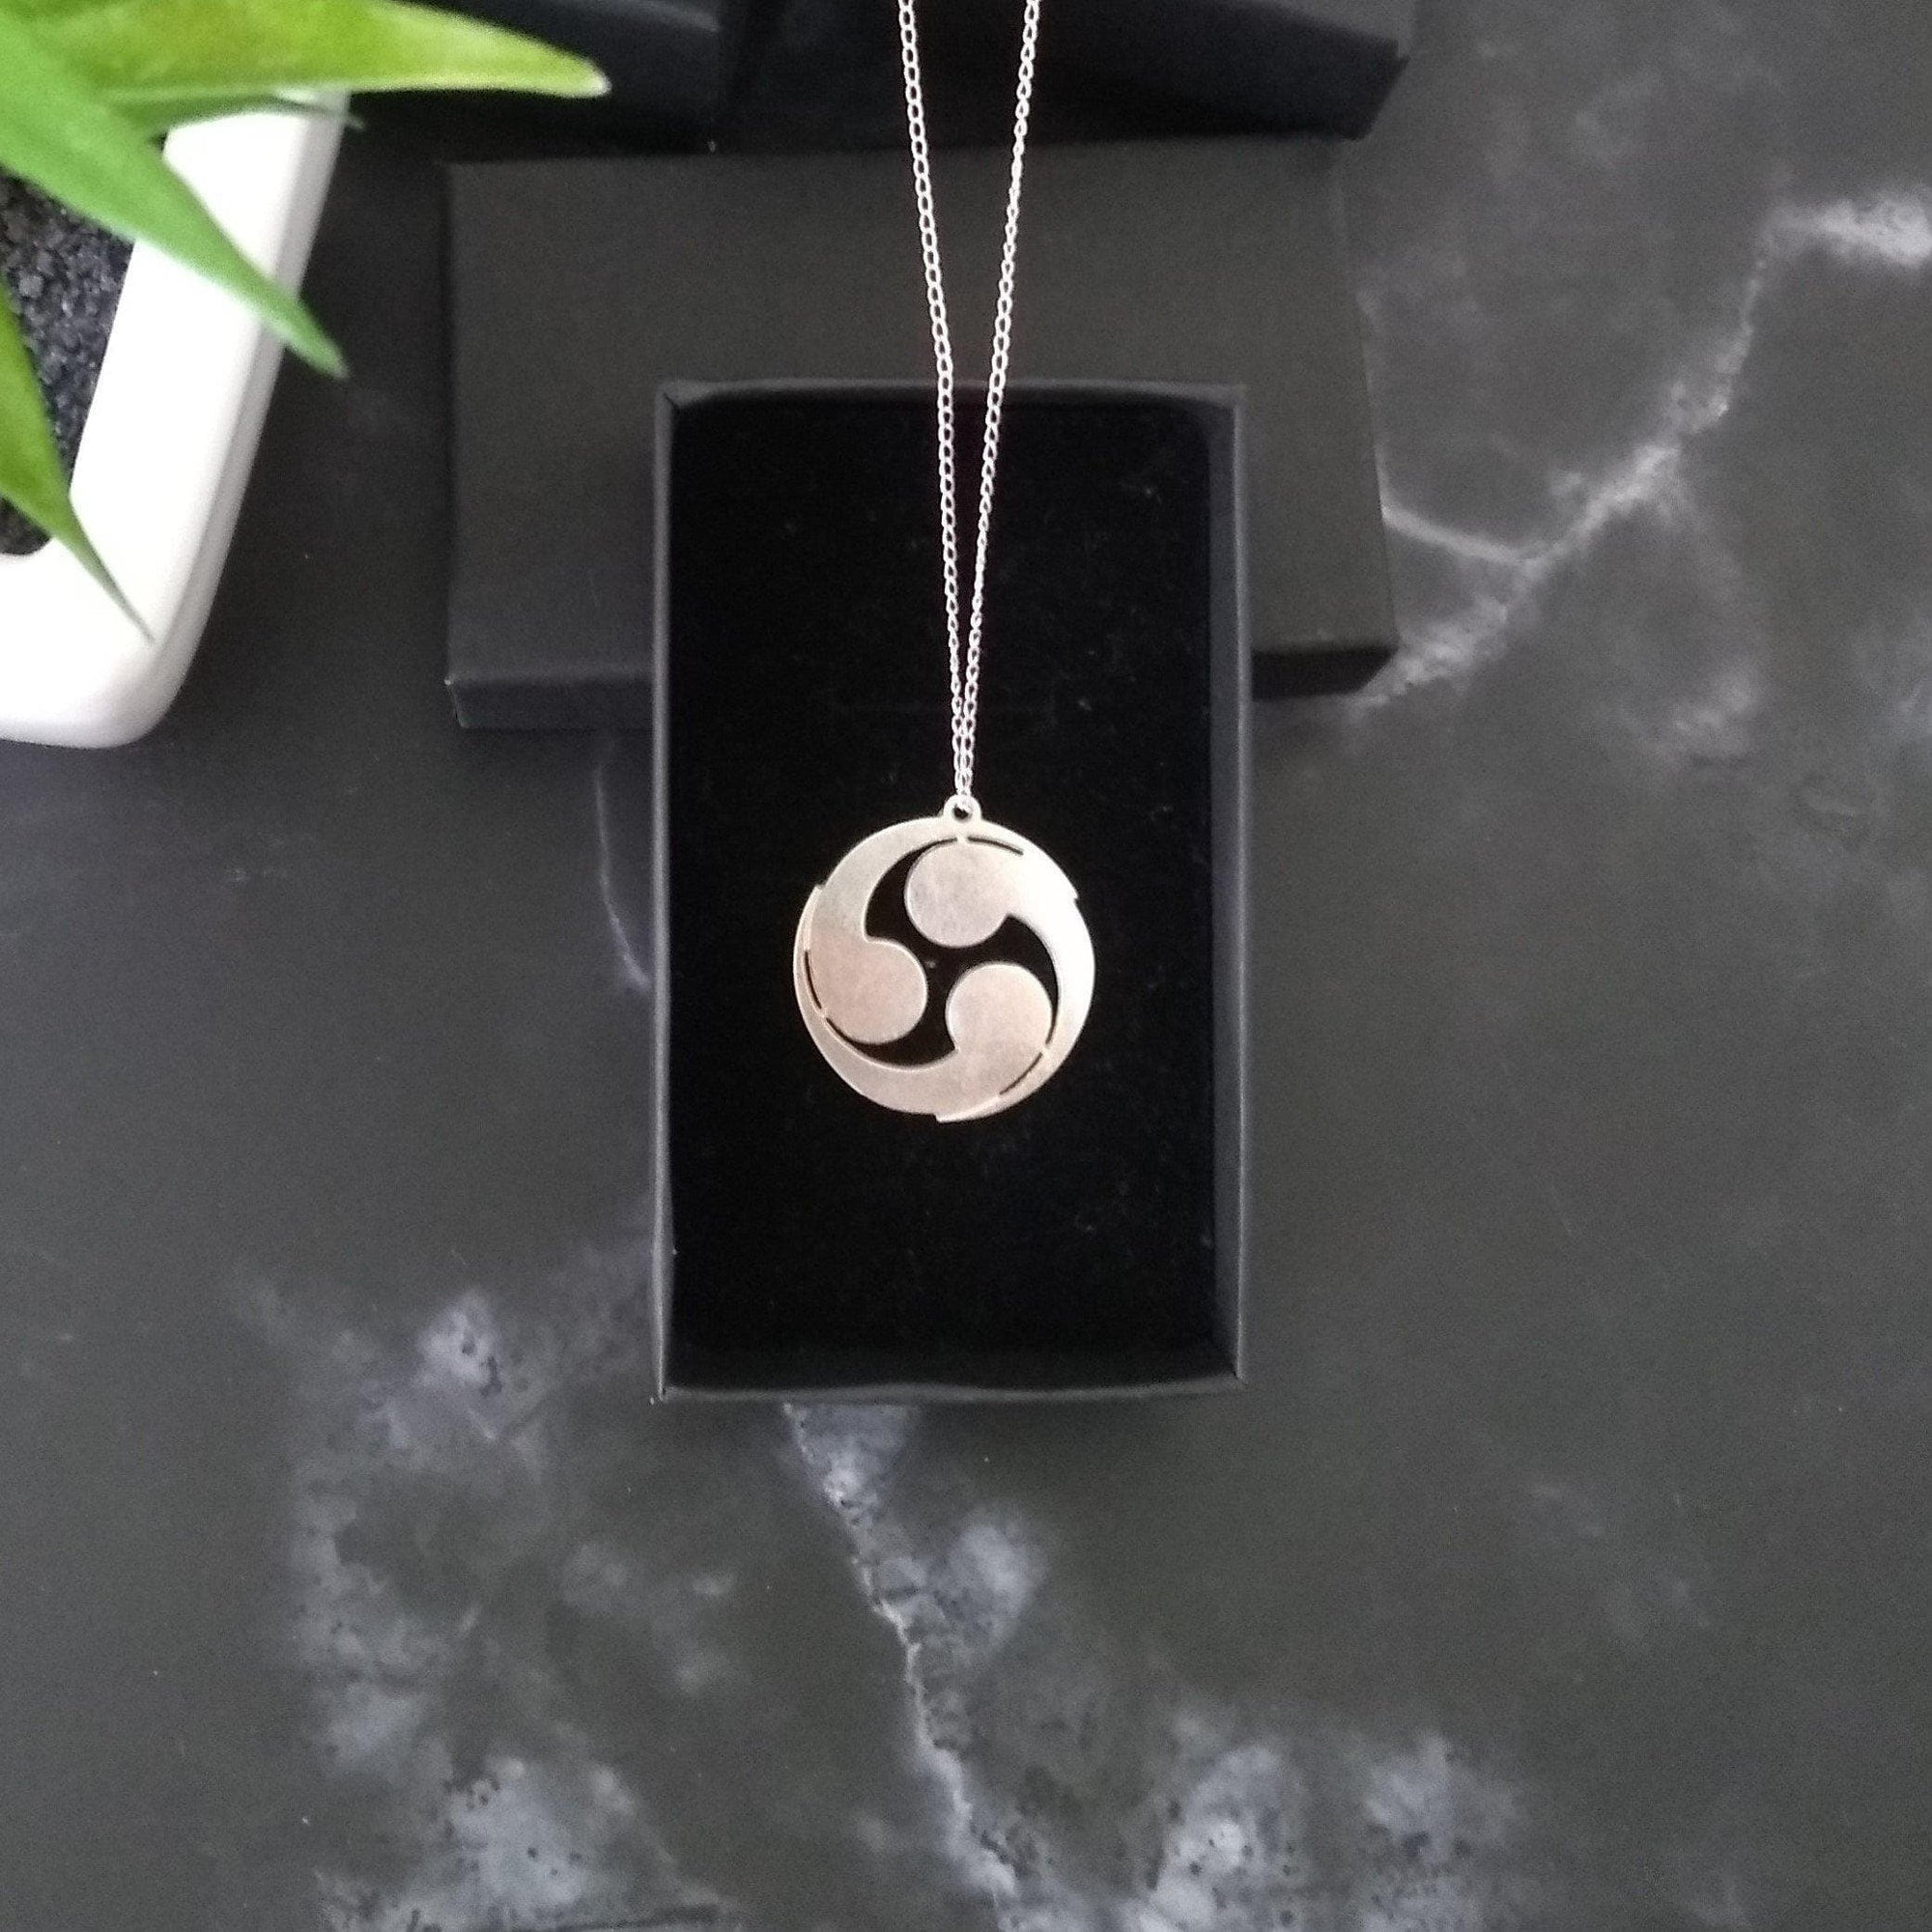 Feudal Japan Tomoe Symbol Sterling Silver Pendant Necklace Ancient Treasures Ancientreasures Viking Odin Thor Mjolnir Celtic Ancient Egypt Norse Norse Mythology